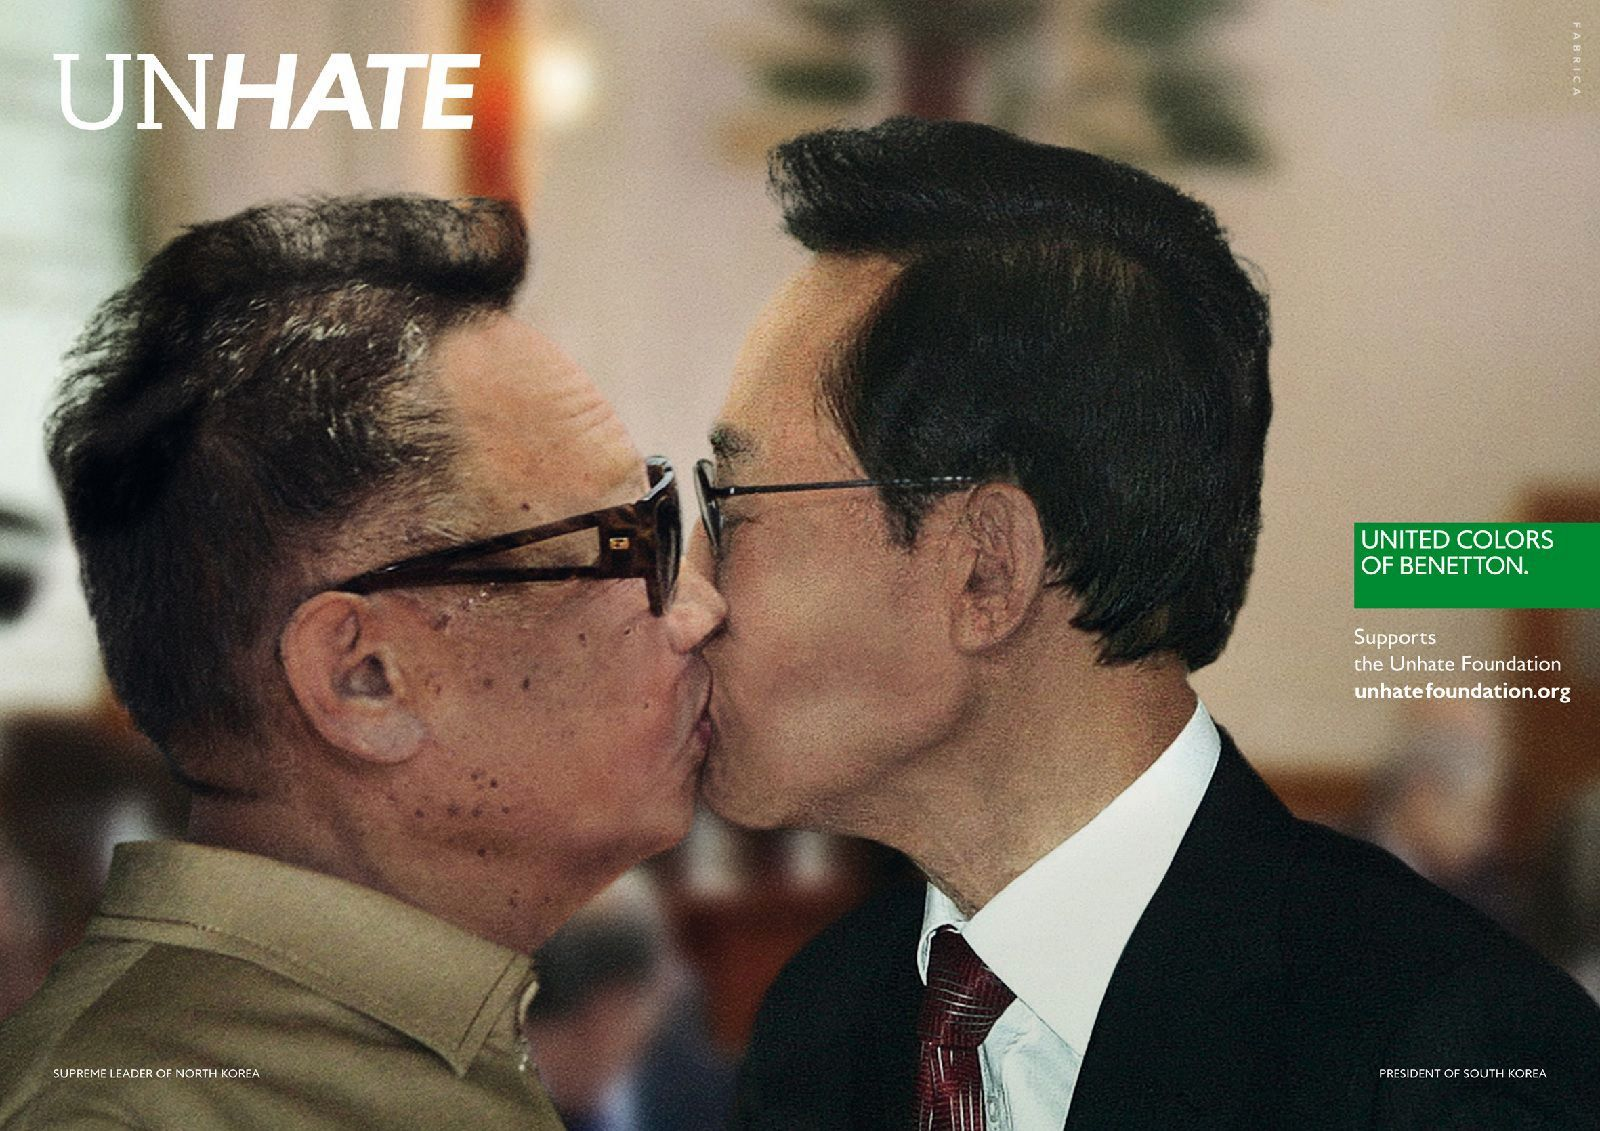 United Colors of Benetton — Unhate